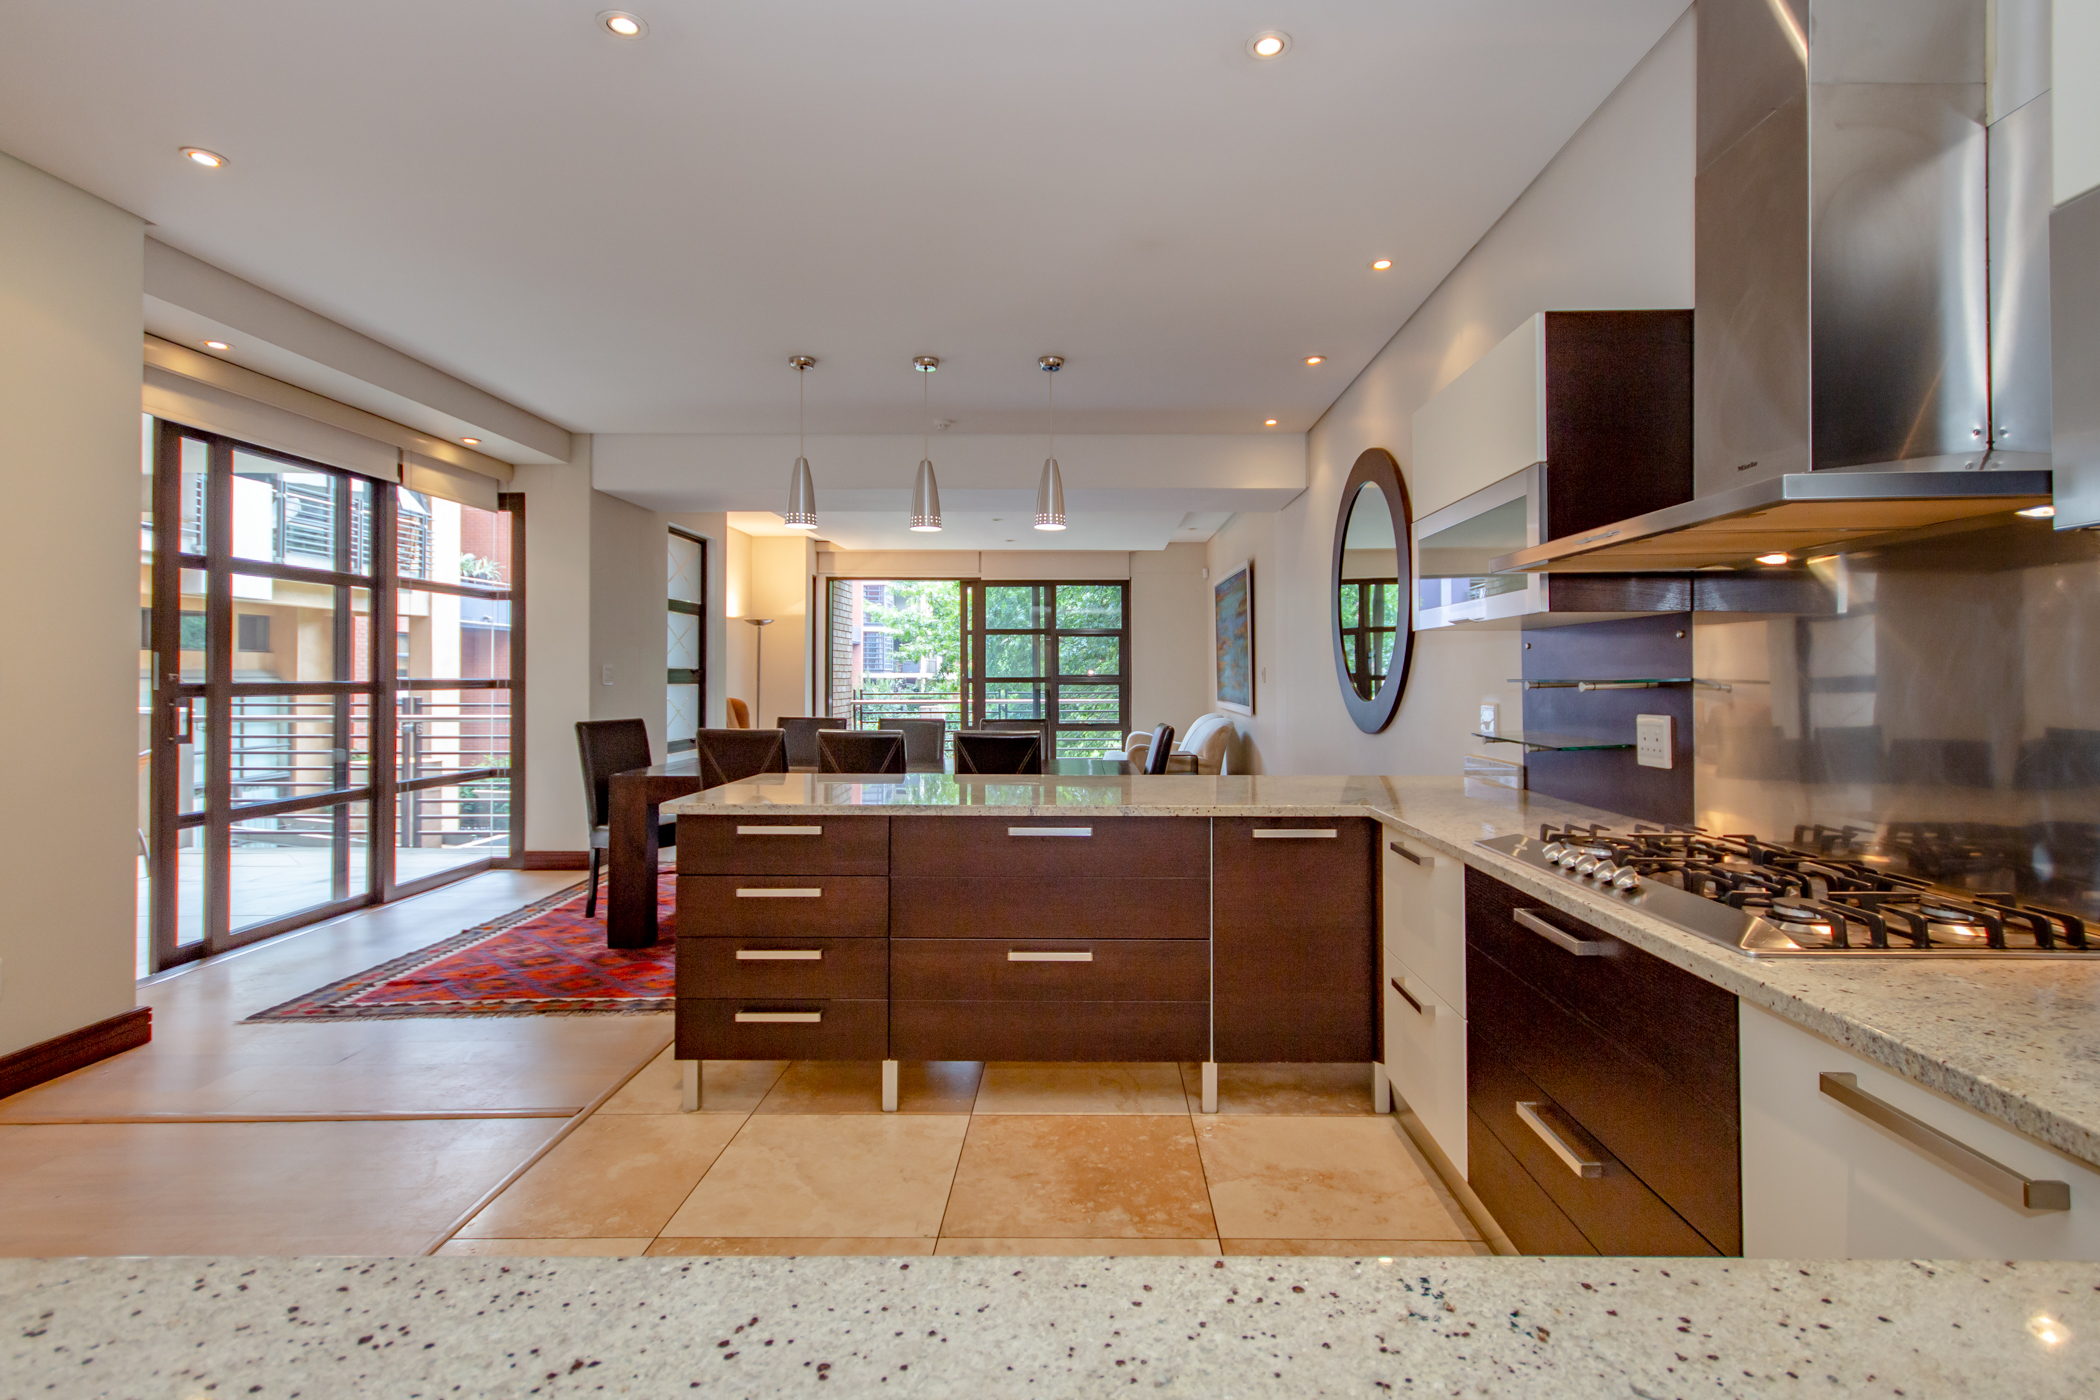 """""""Melrose arch luxury apartment kitchen with a view of the diningroom"""" """"Flats for rent in Johannesburg"""""""